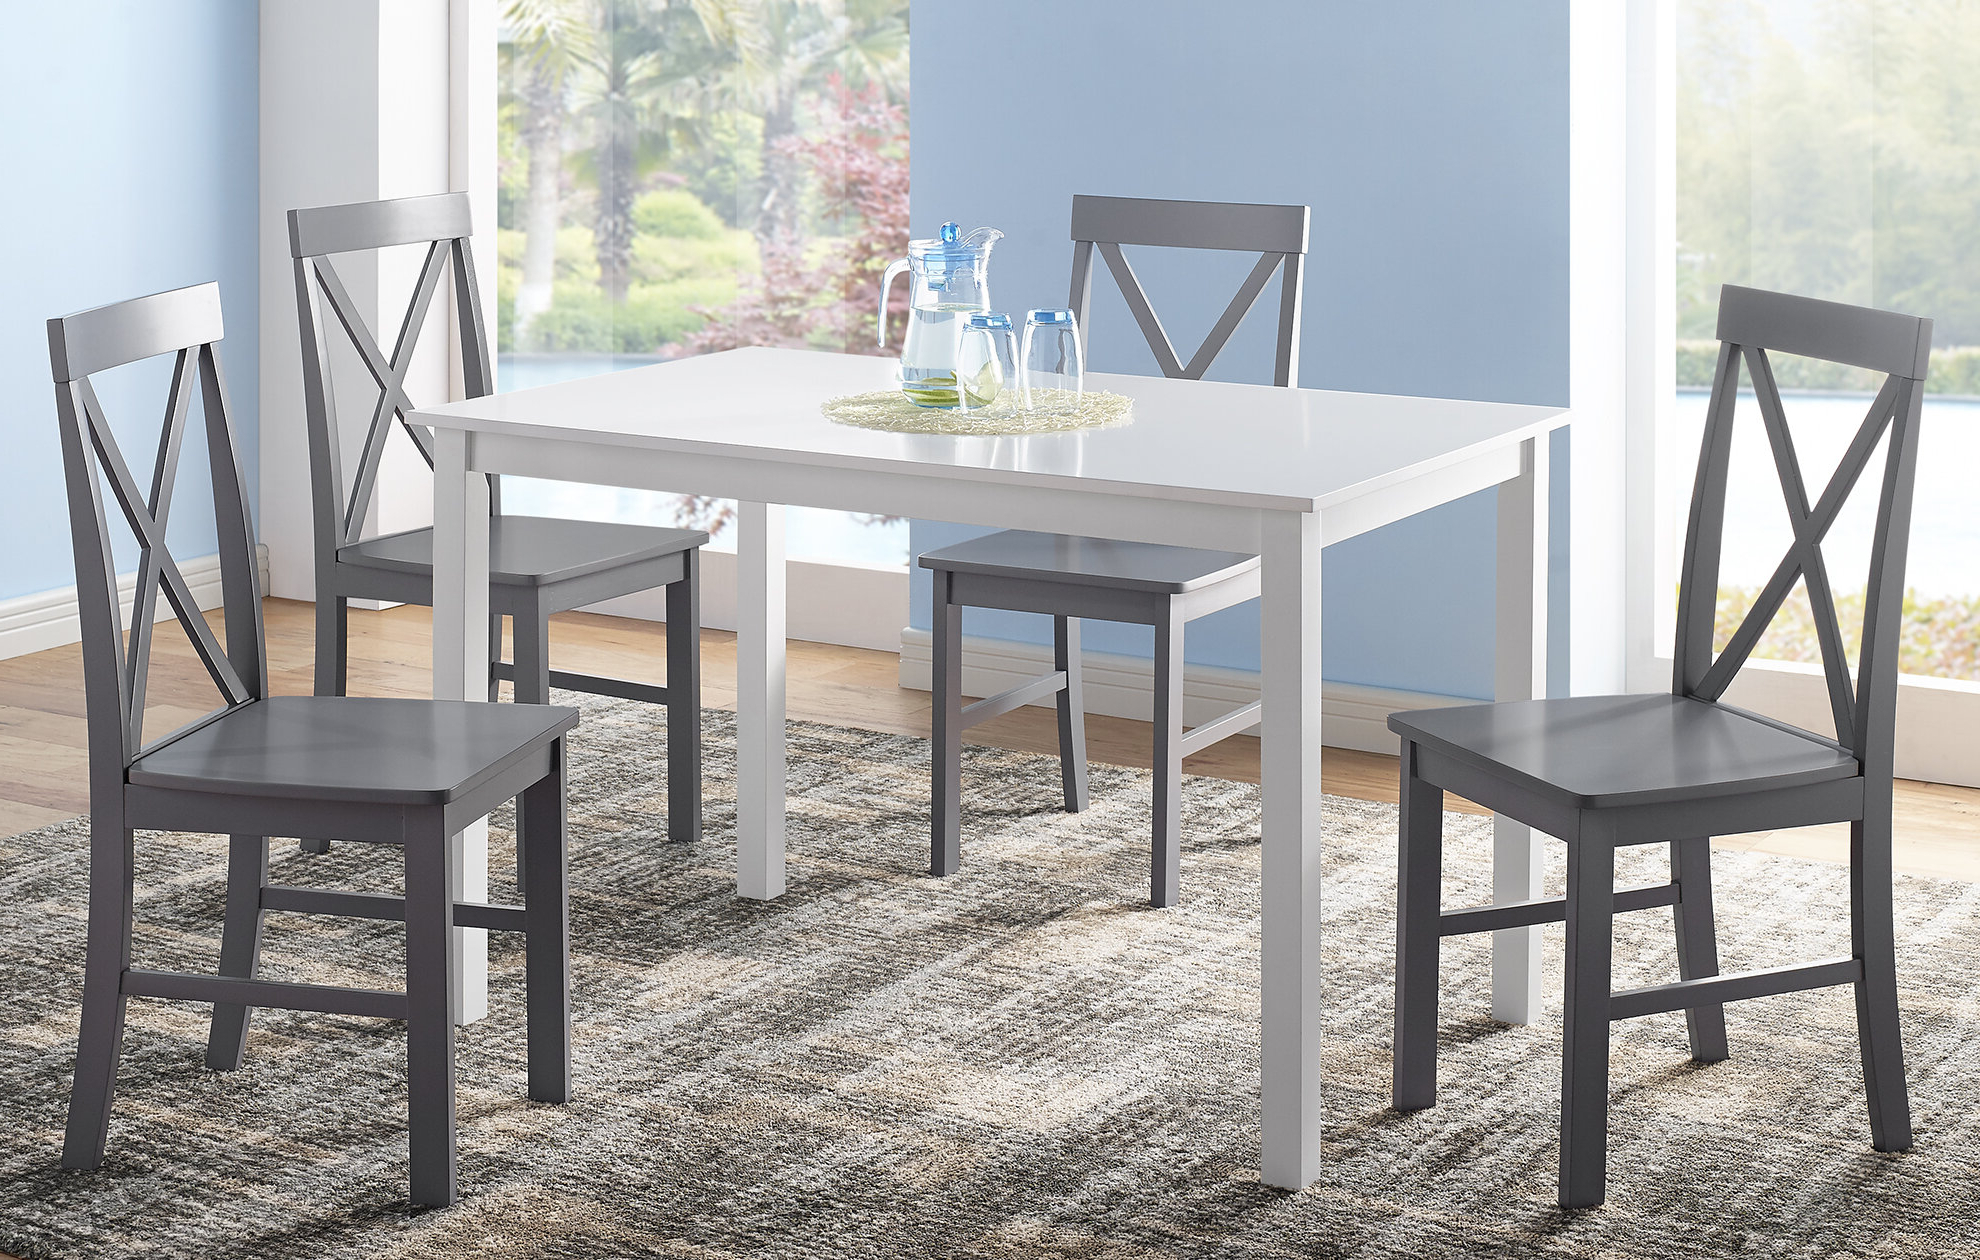 2017 Rarick 5 Piece Solid Wood Dining Set Within Turnalar 5 Piece Dining Sets (View 7 of 20)